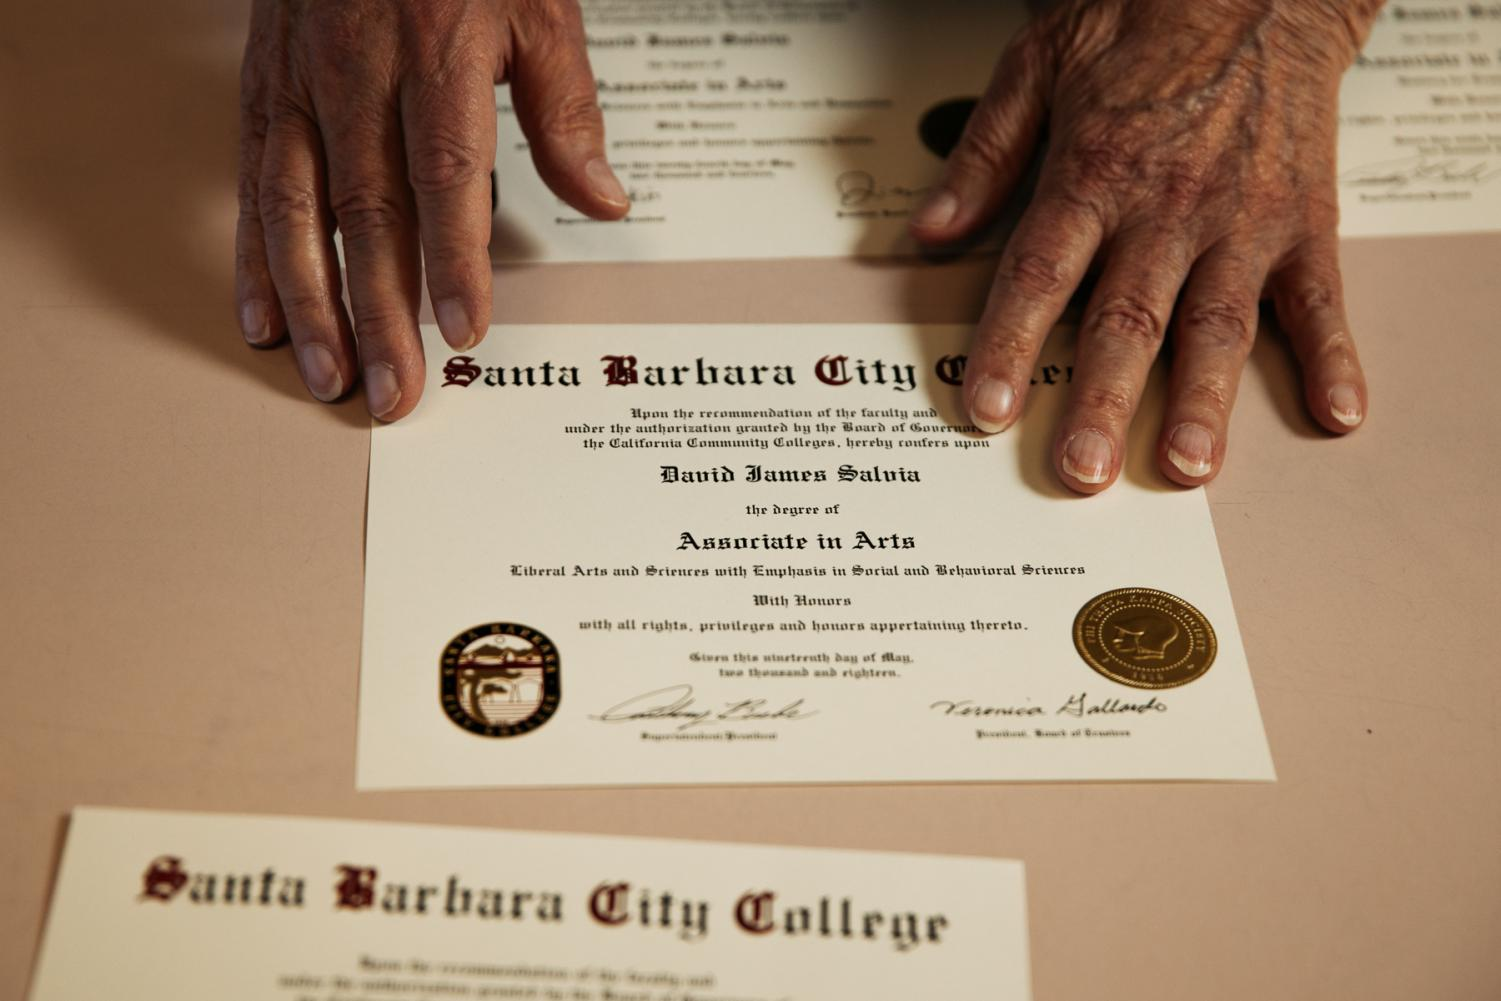 David Salvia arranges his degrees and certificates on a table in the Luria Library on Thursday, Oct. 31, in Santa Barbara, Calif.